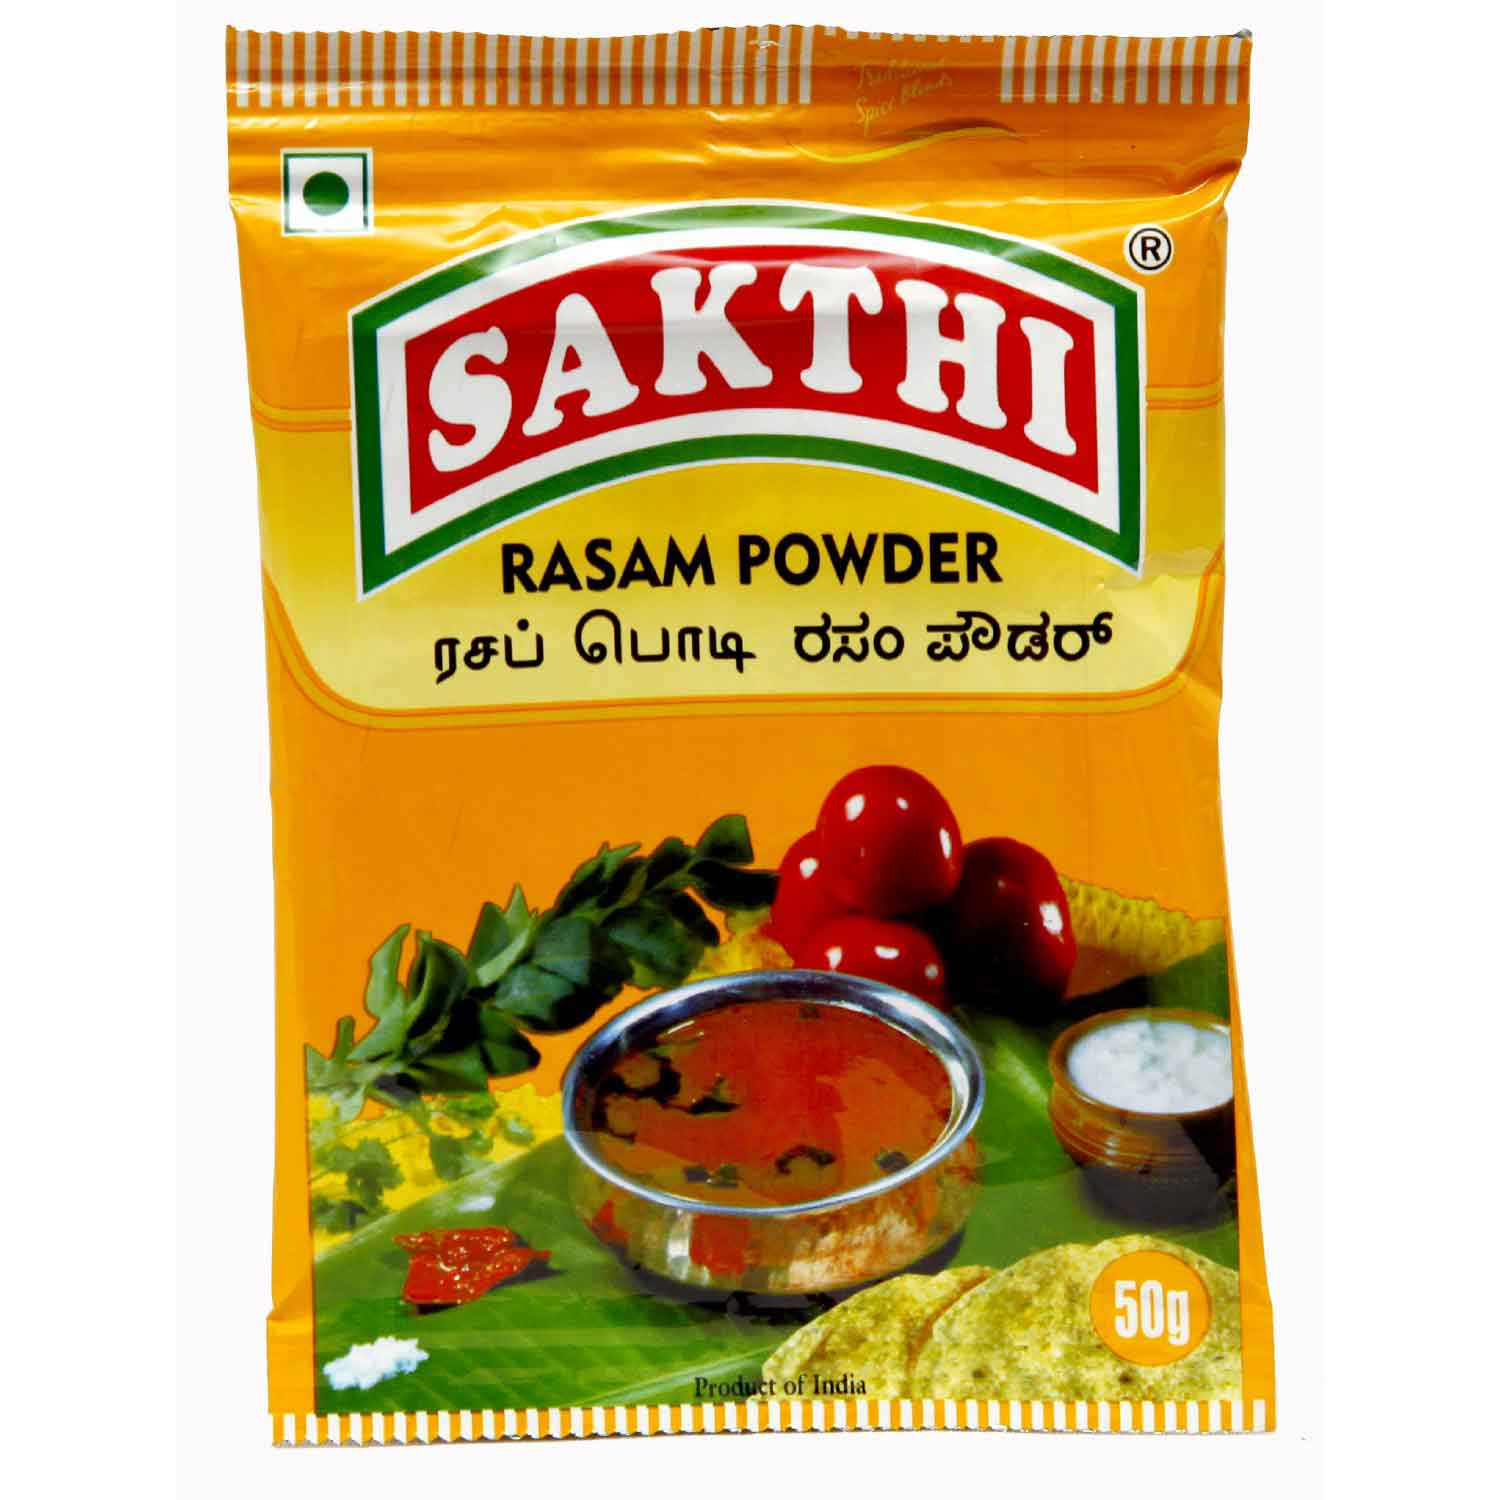 Sakthi Rasam Powder